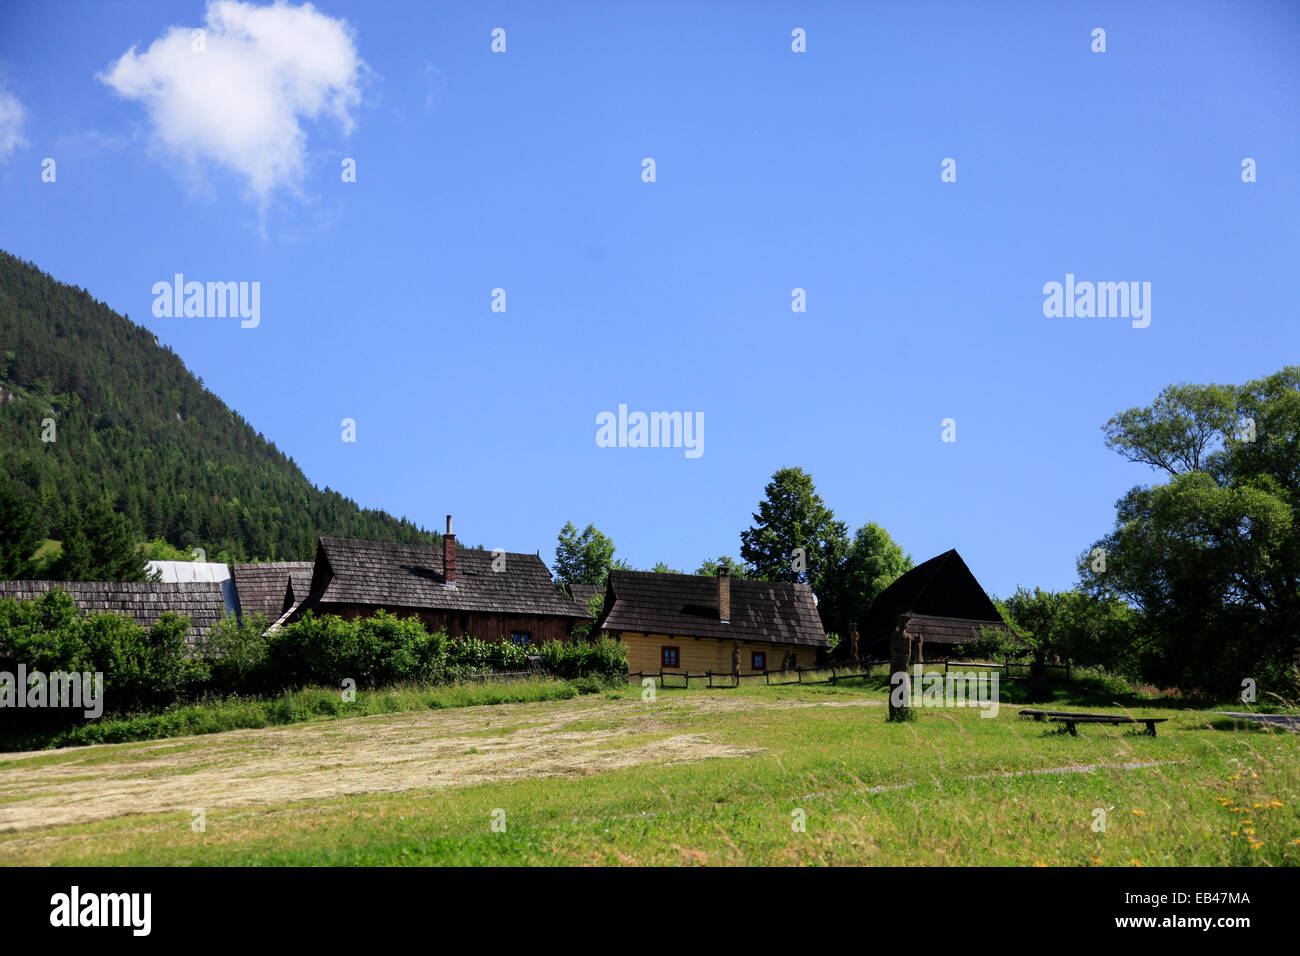 Vlkolinec,  folk architecture reservations. picturesque historical village with traditional wooden houses, Slovakia - Stock Image